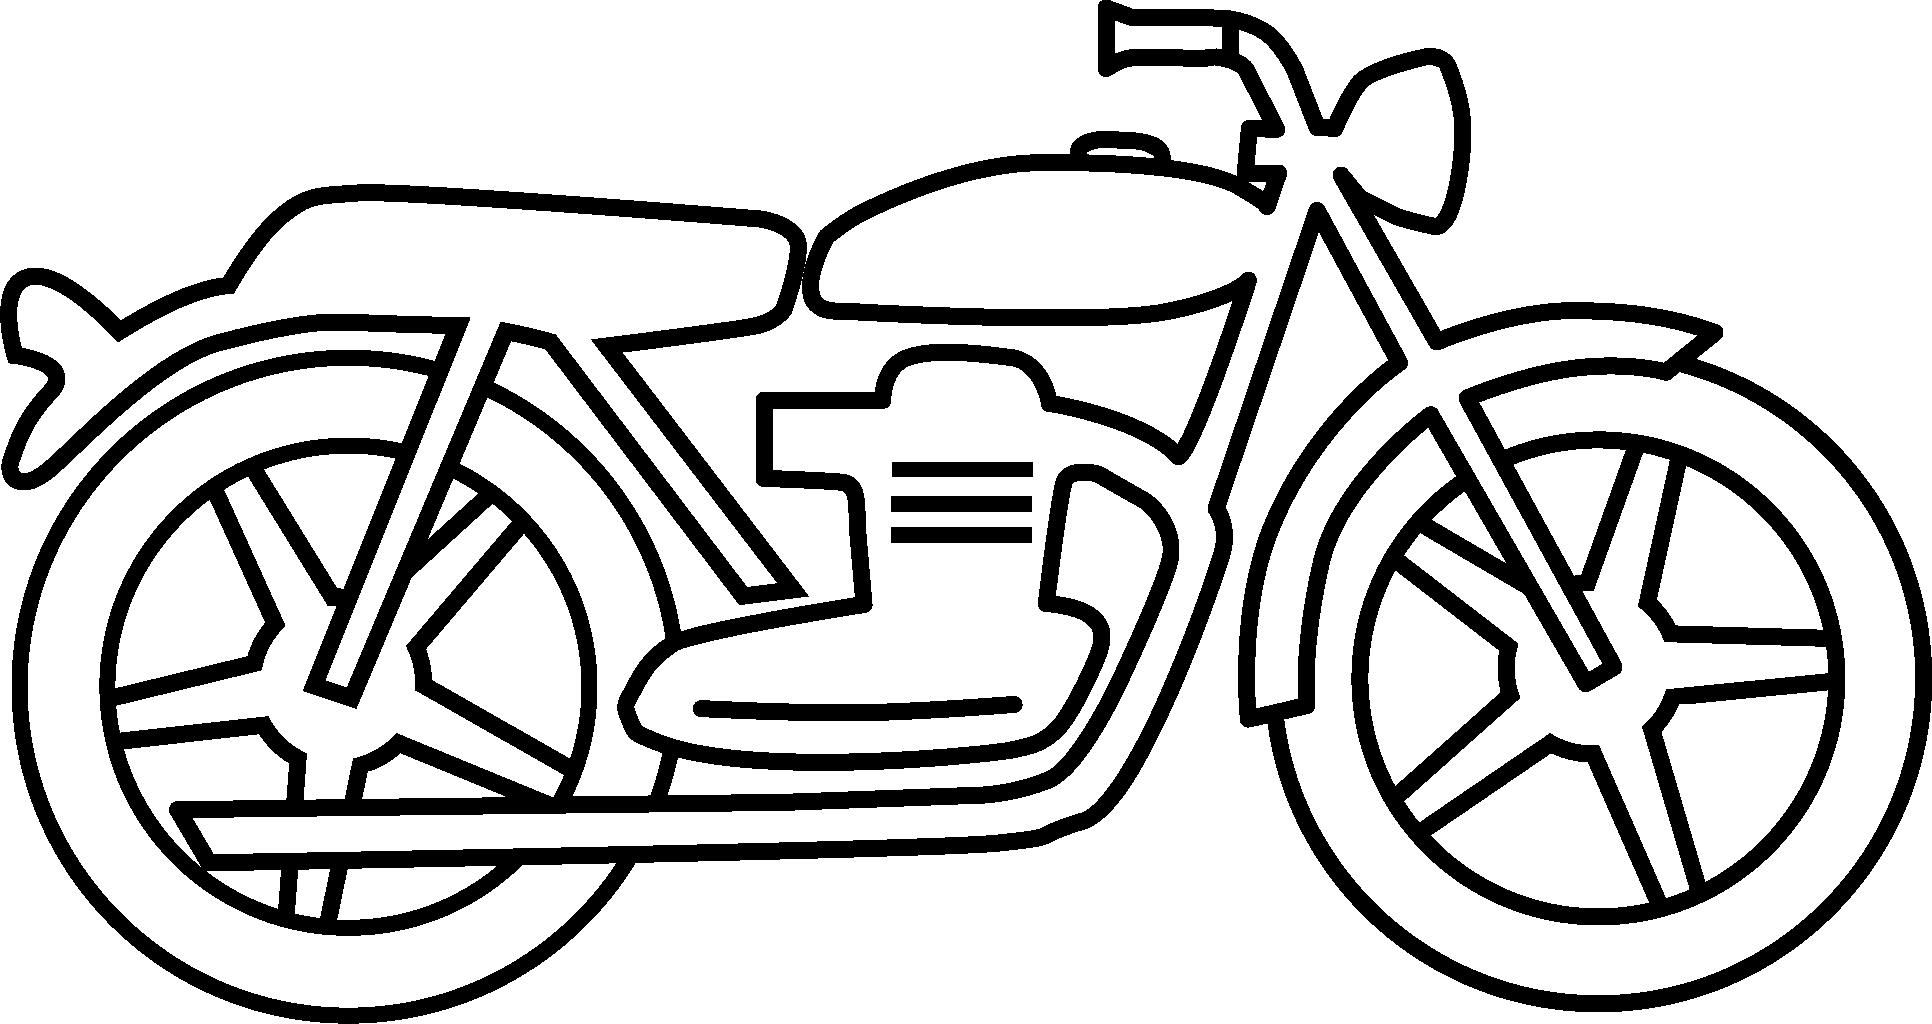 Motorcycle Black And White Motorcycle Clipart Black And